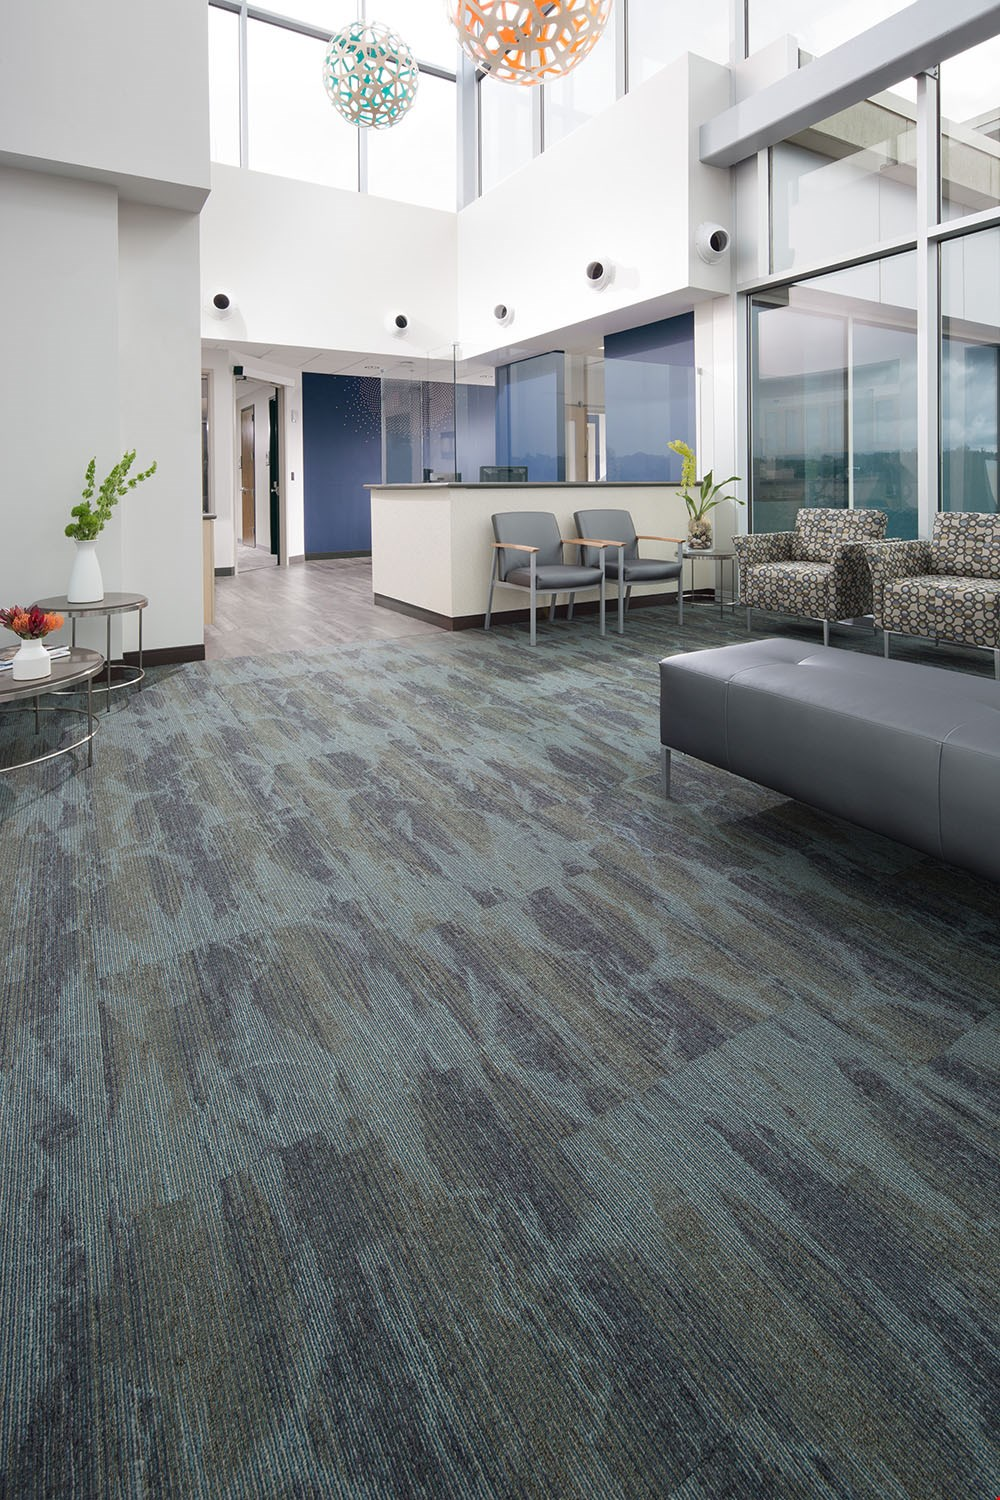 Mohawk groups topography carpet tile collection wins best of year mohawk group presents healthcare flooring solutions at healthcare design conference 2016 baanklon Images